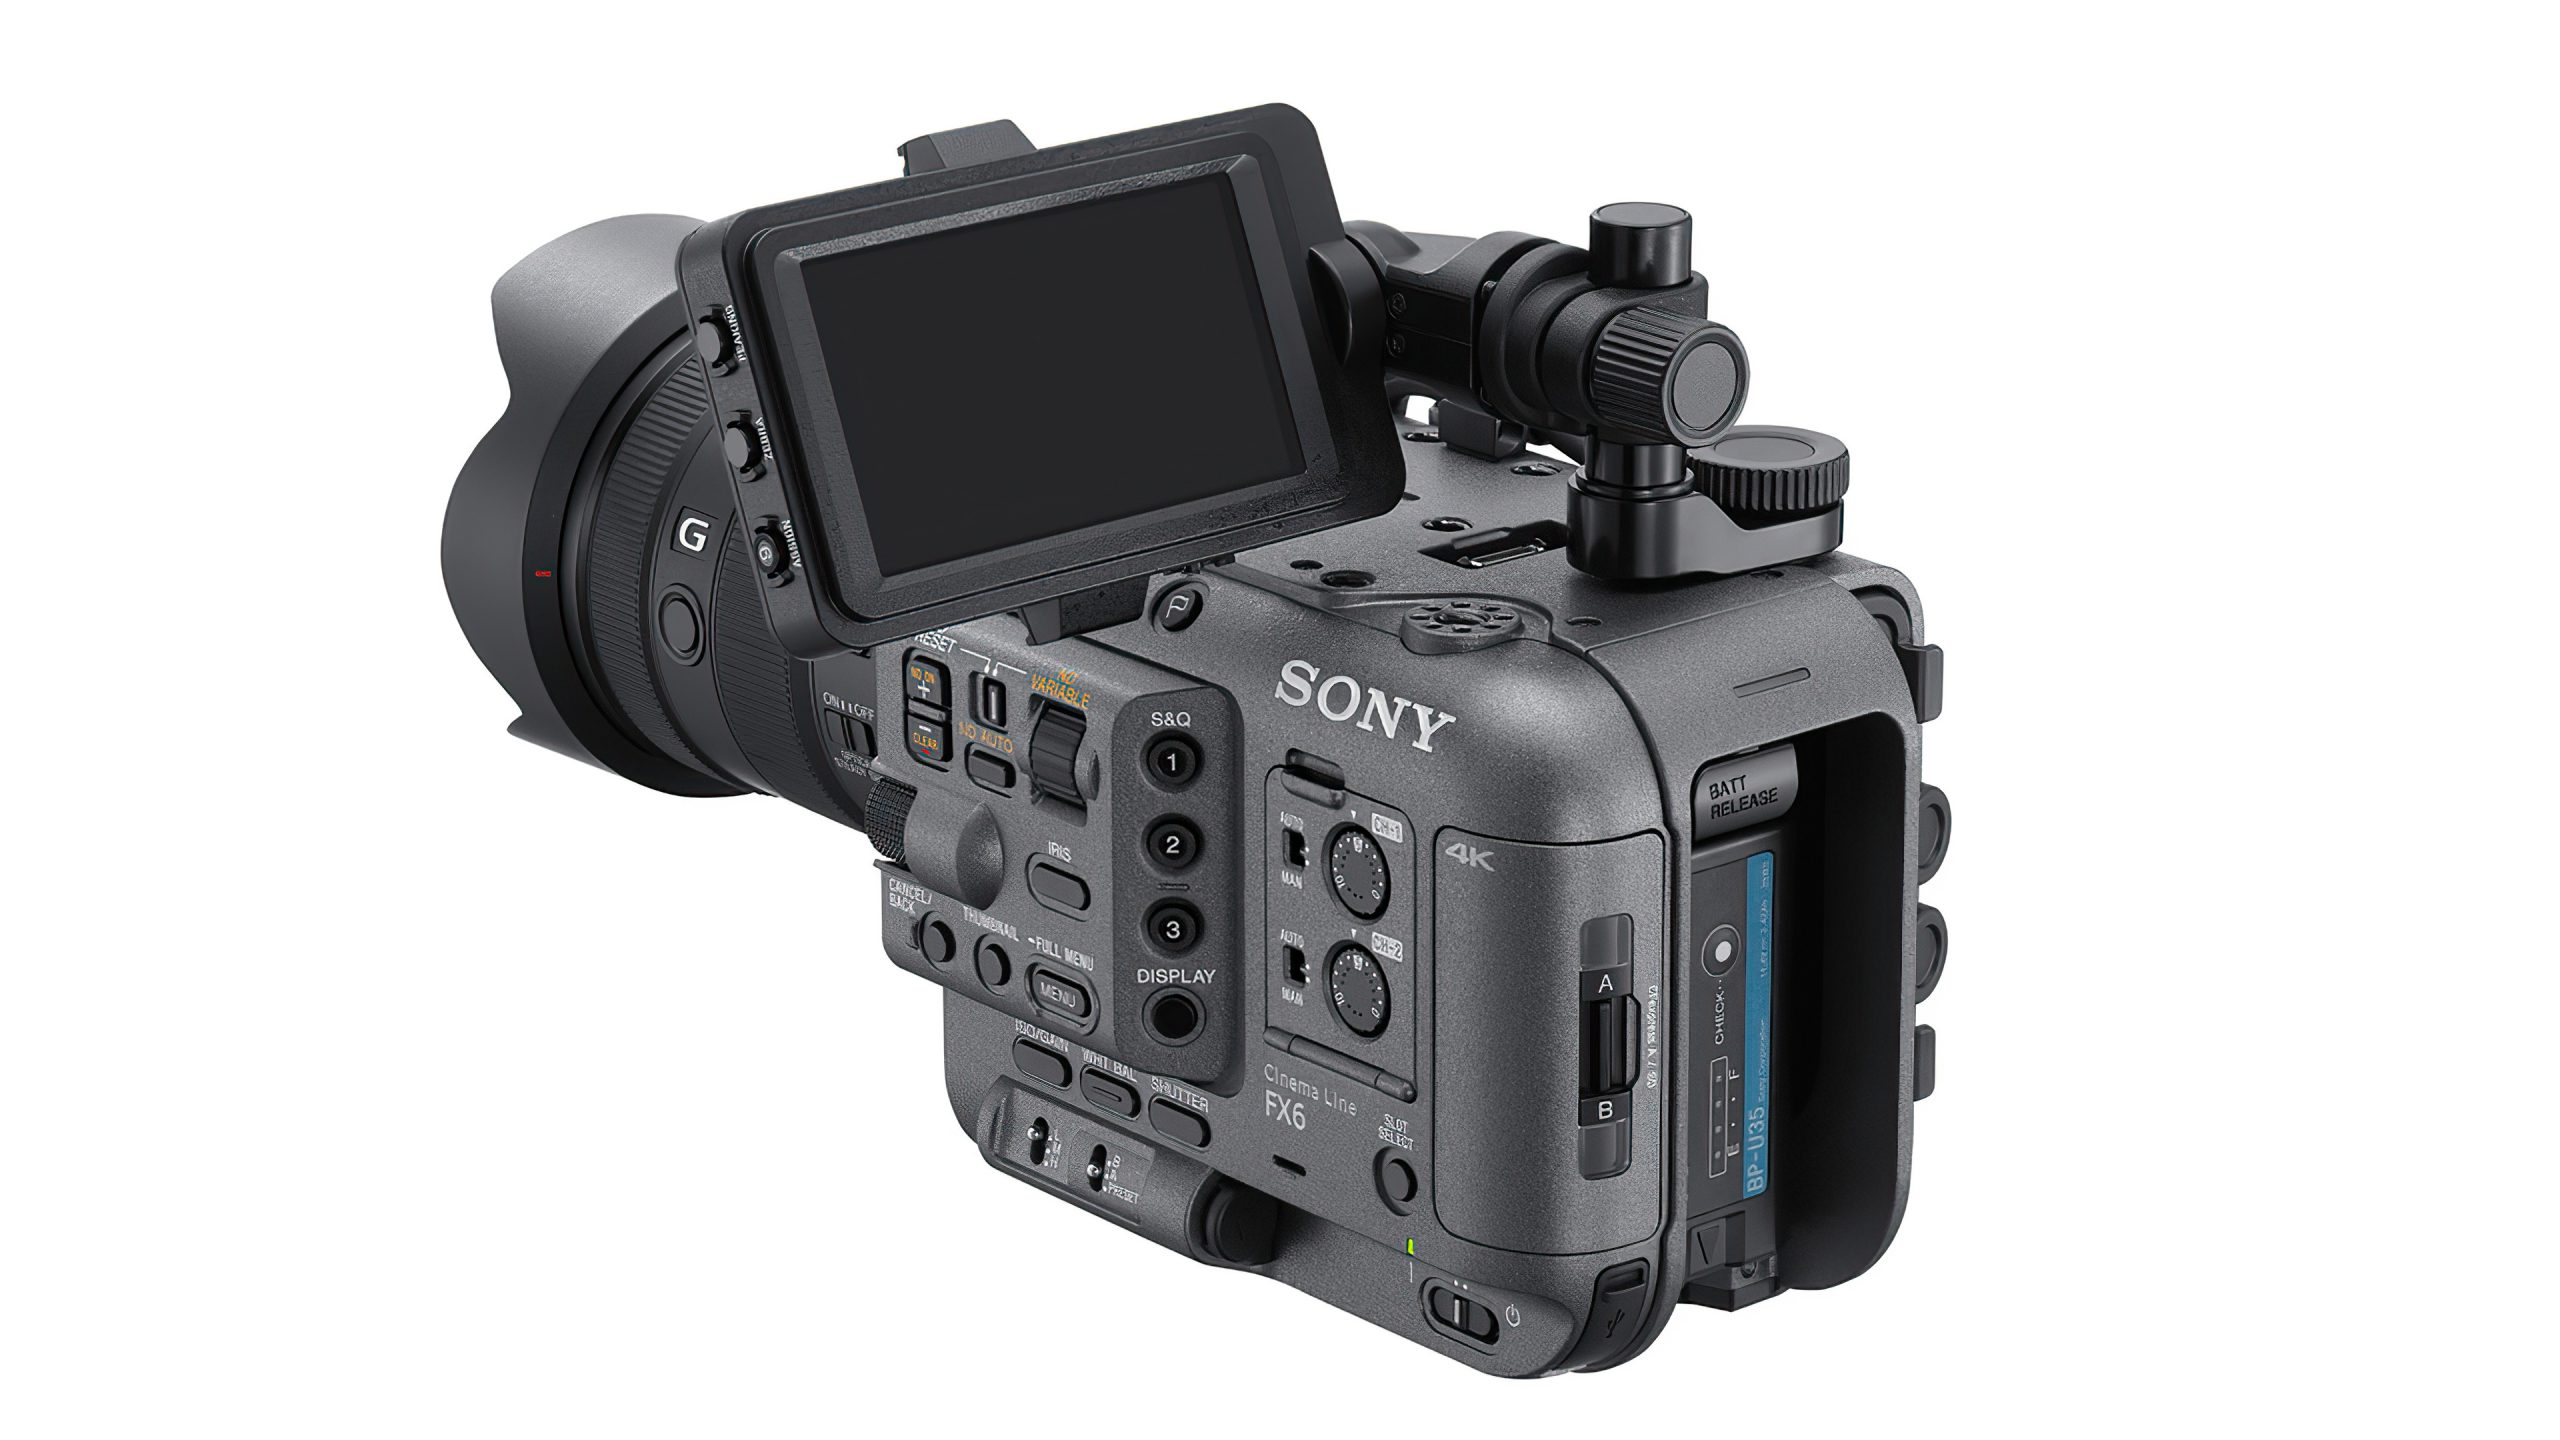 Sony Cinema Line FX6